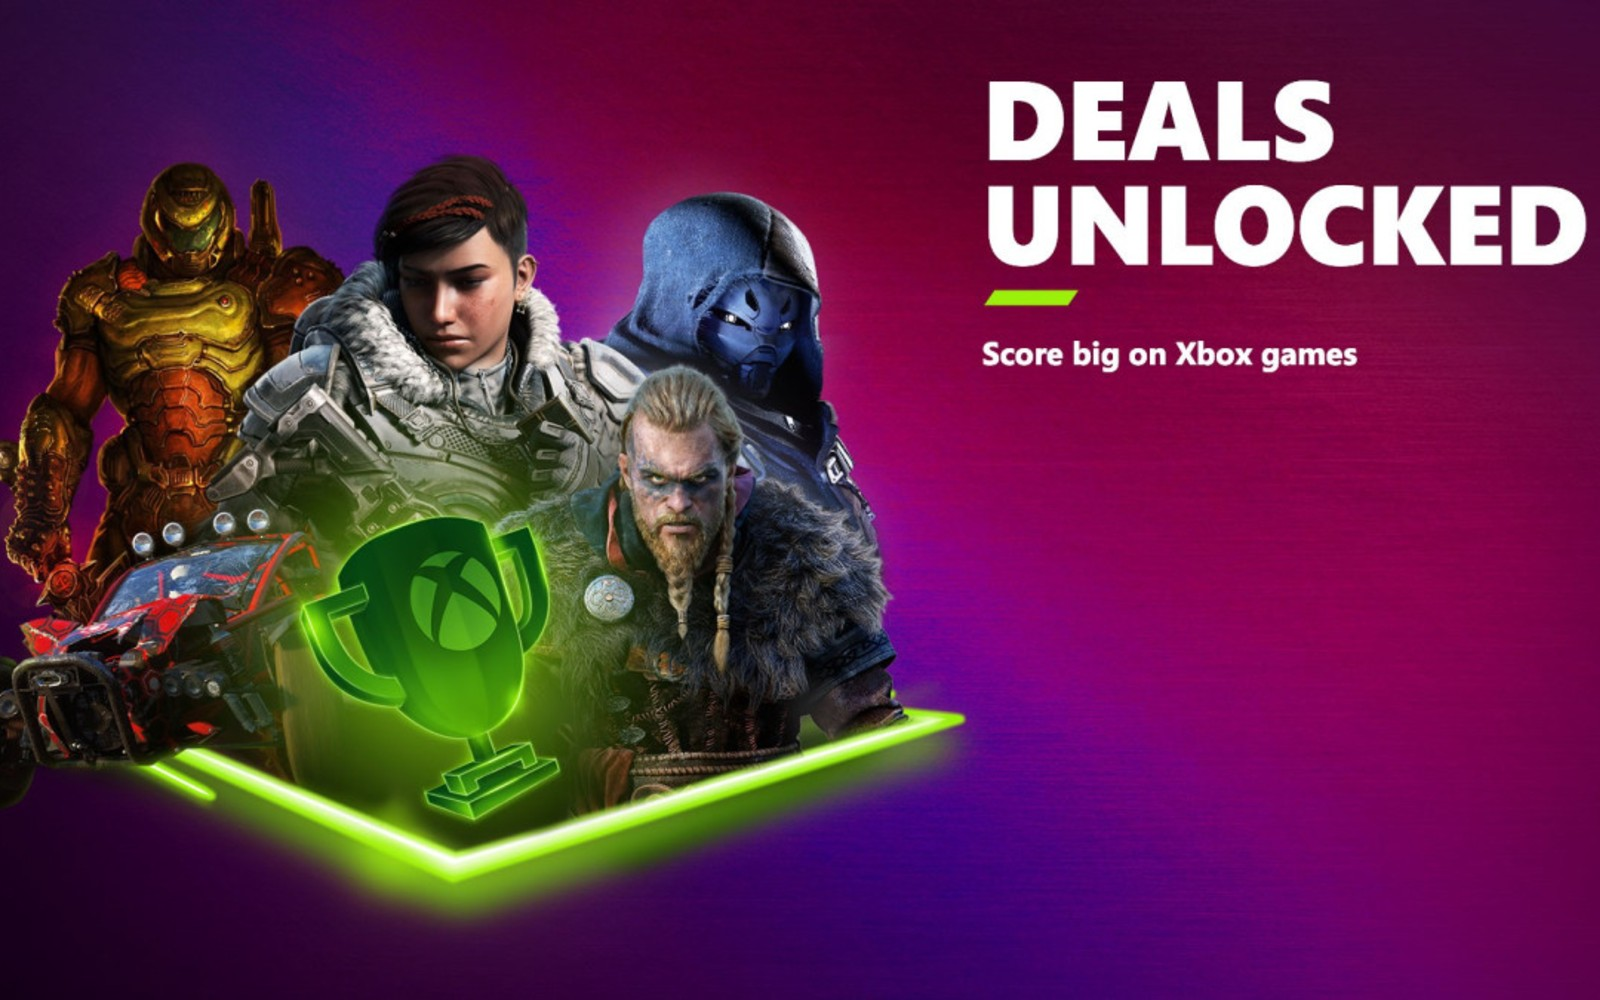 Microsoft's E3 sale includes discounts on 'Cyberpunk 2077' and gaming accessories